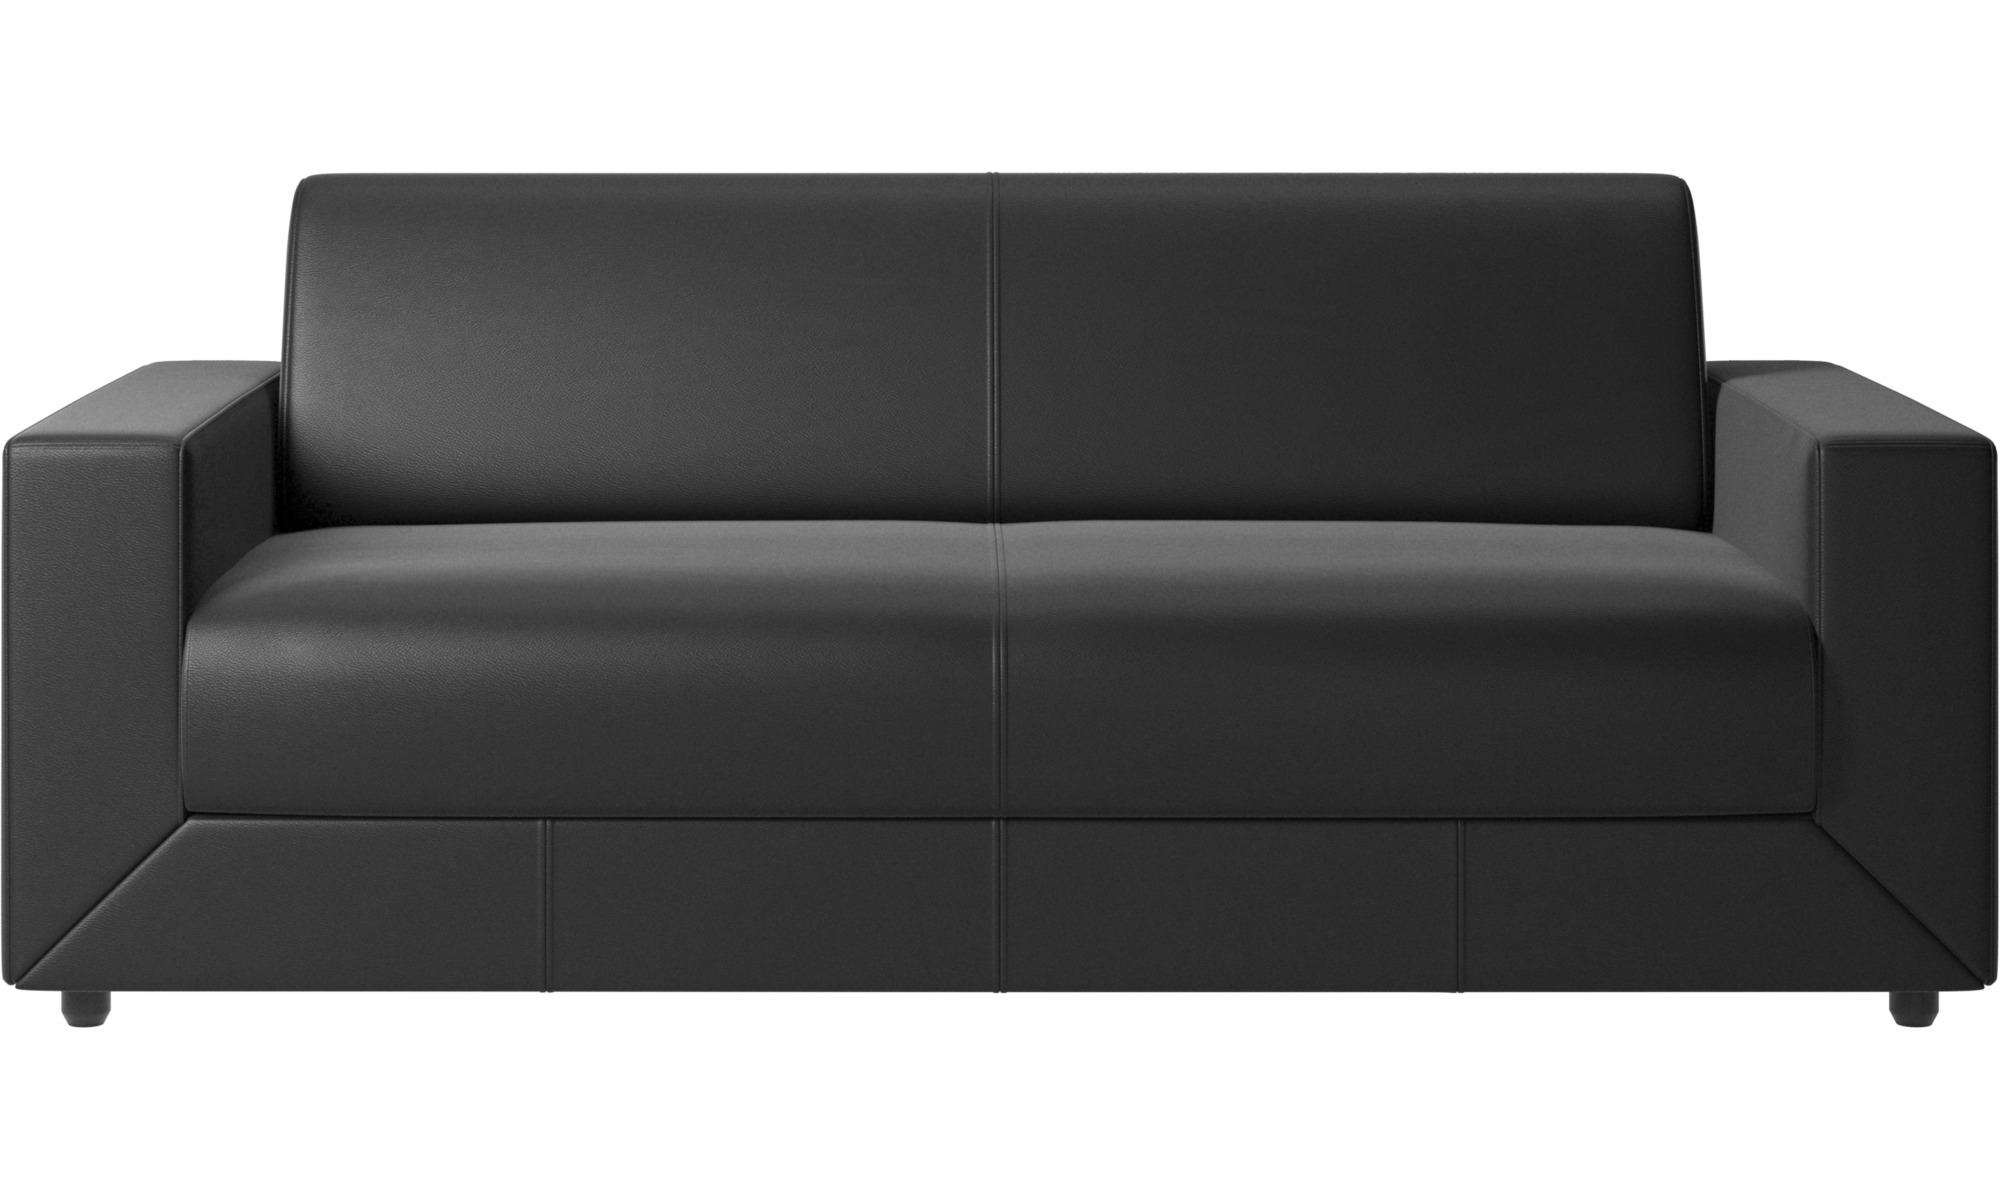 Sofa beds  Stockholm sofa bed  BoConcept